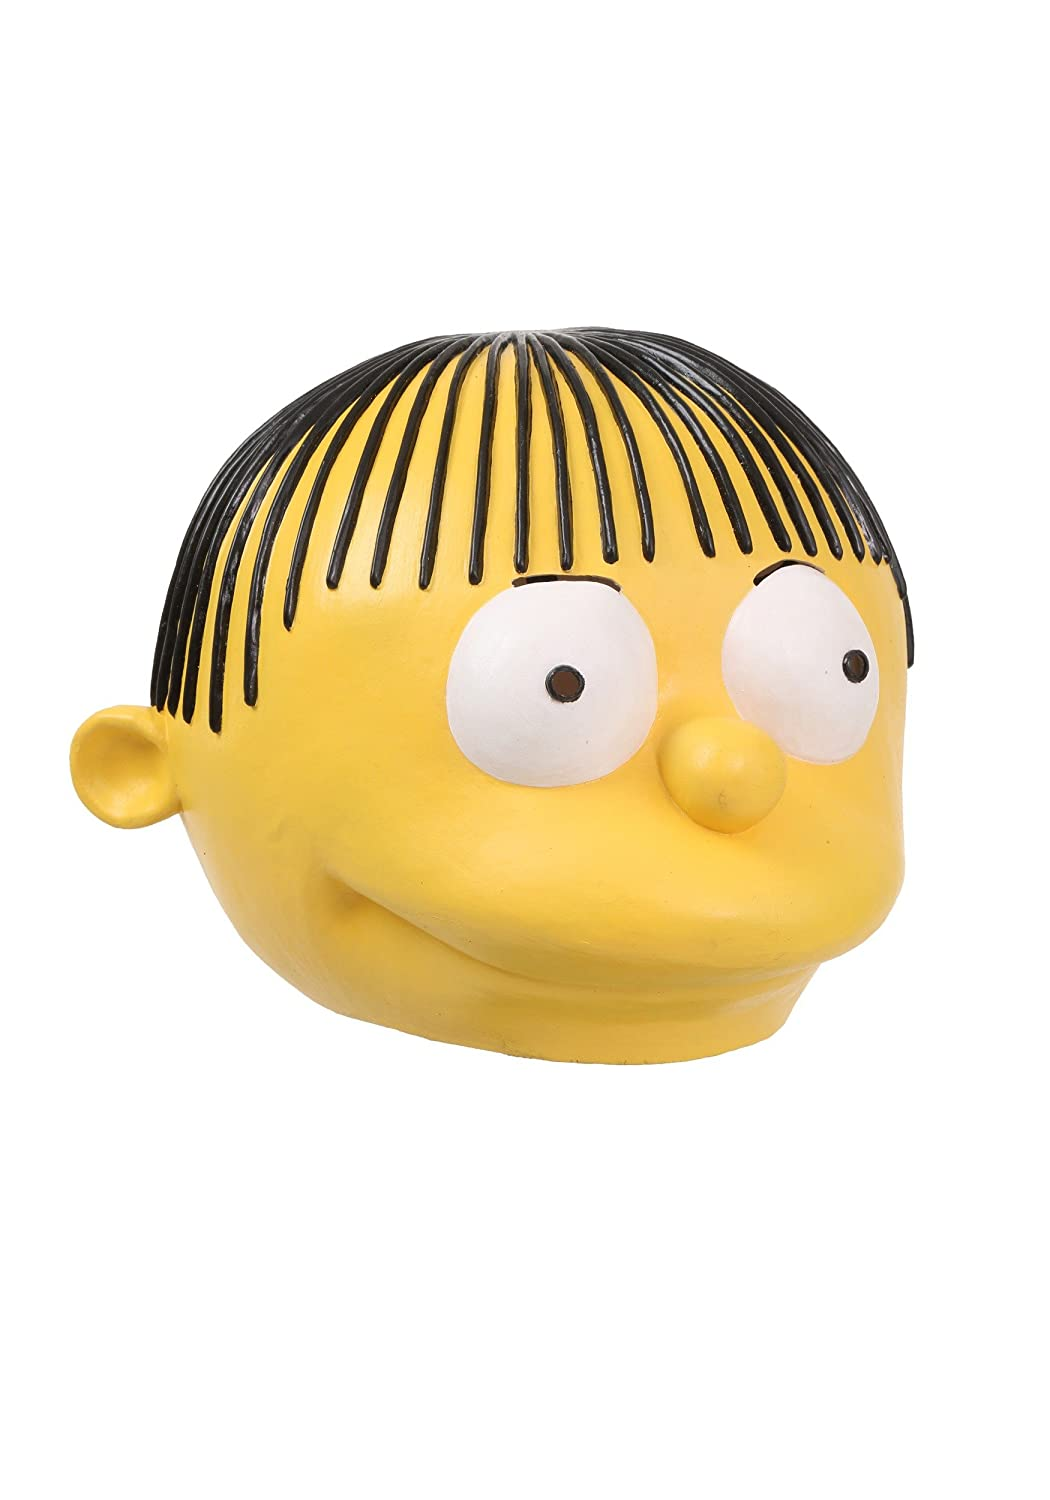 The Simpsons Ralph Wiggum Mask Standardhttps://amzn.to/2RXAzPD